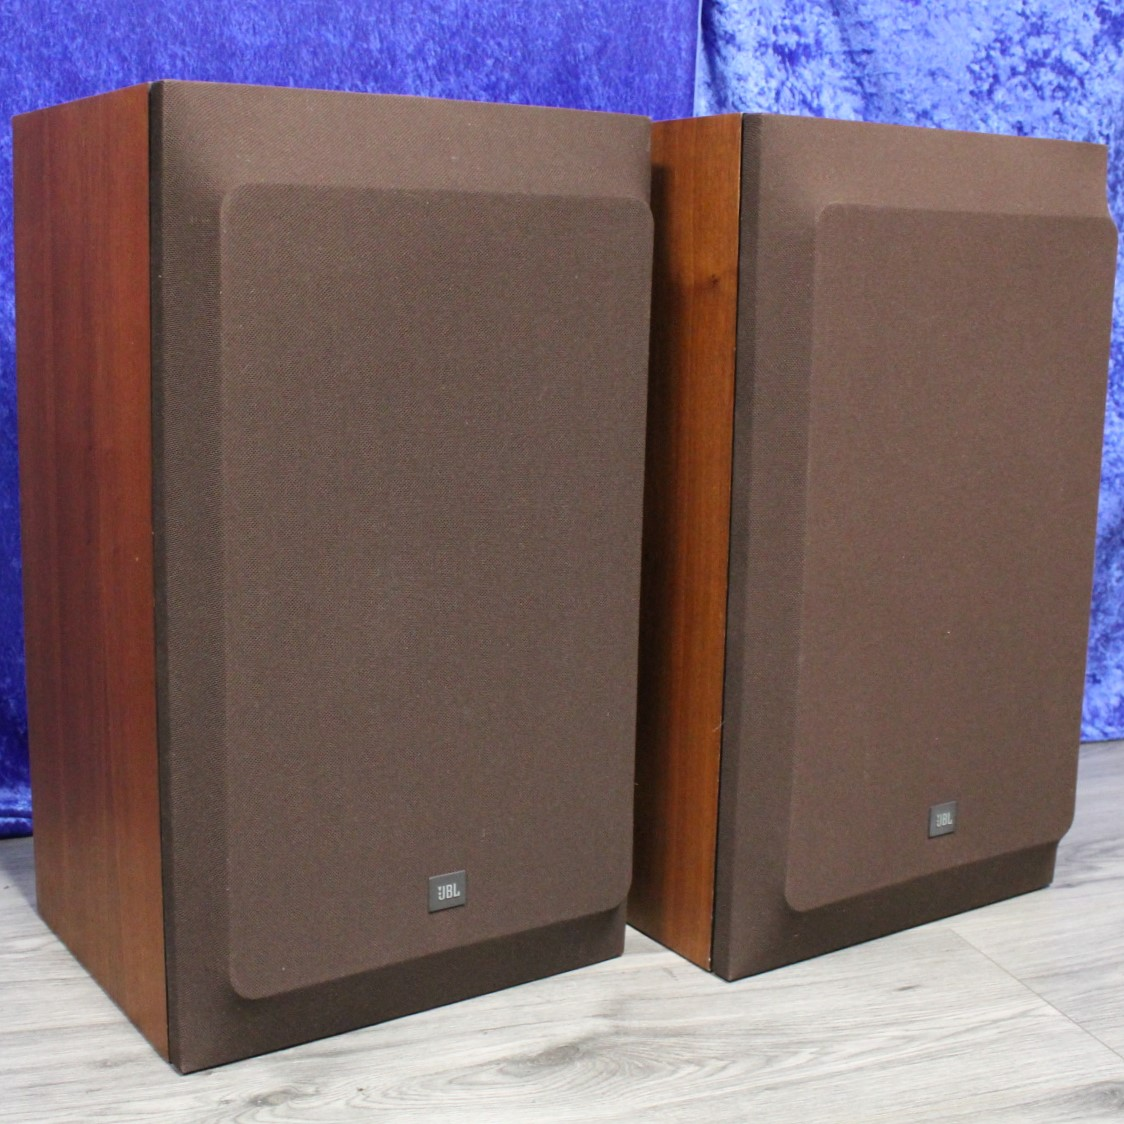 JBL L112 mit Frontbespannung